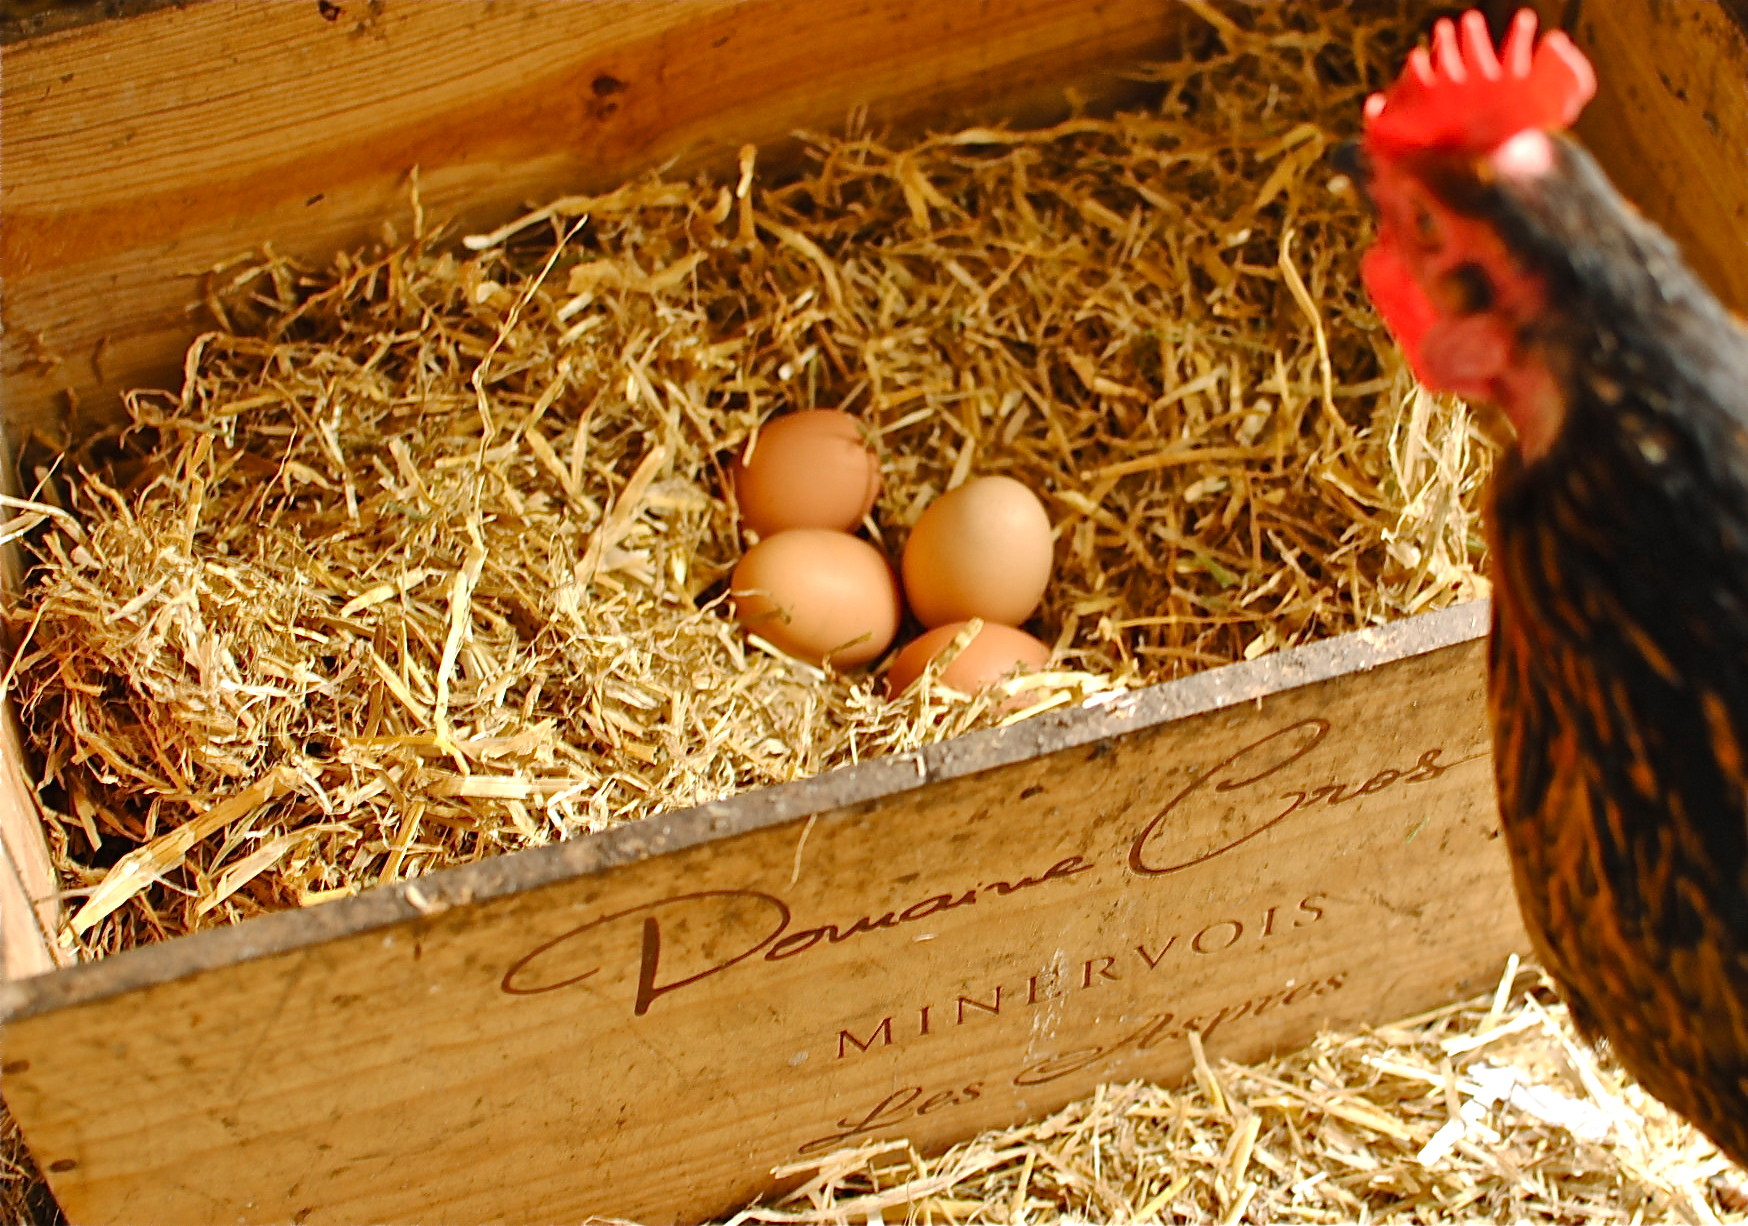 Gratuitous shot of sugar the hen and eggs